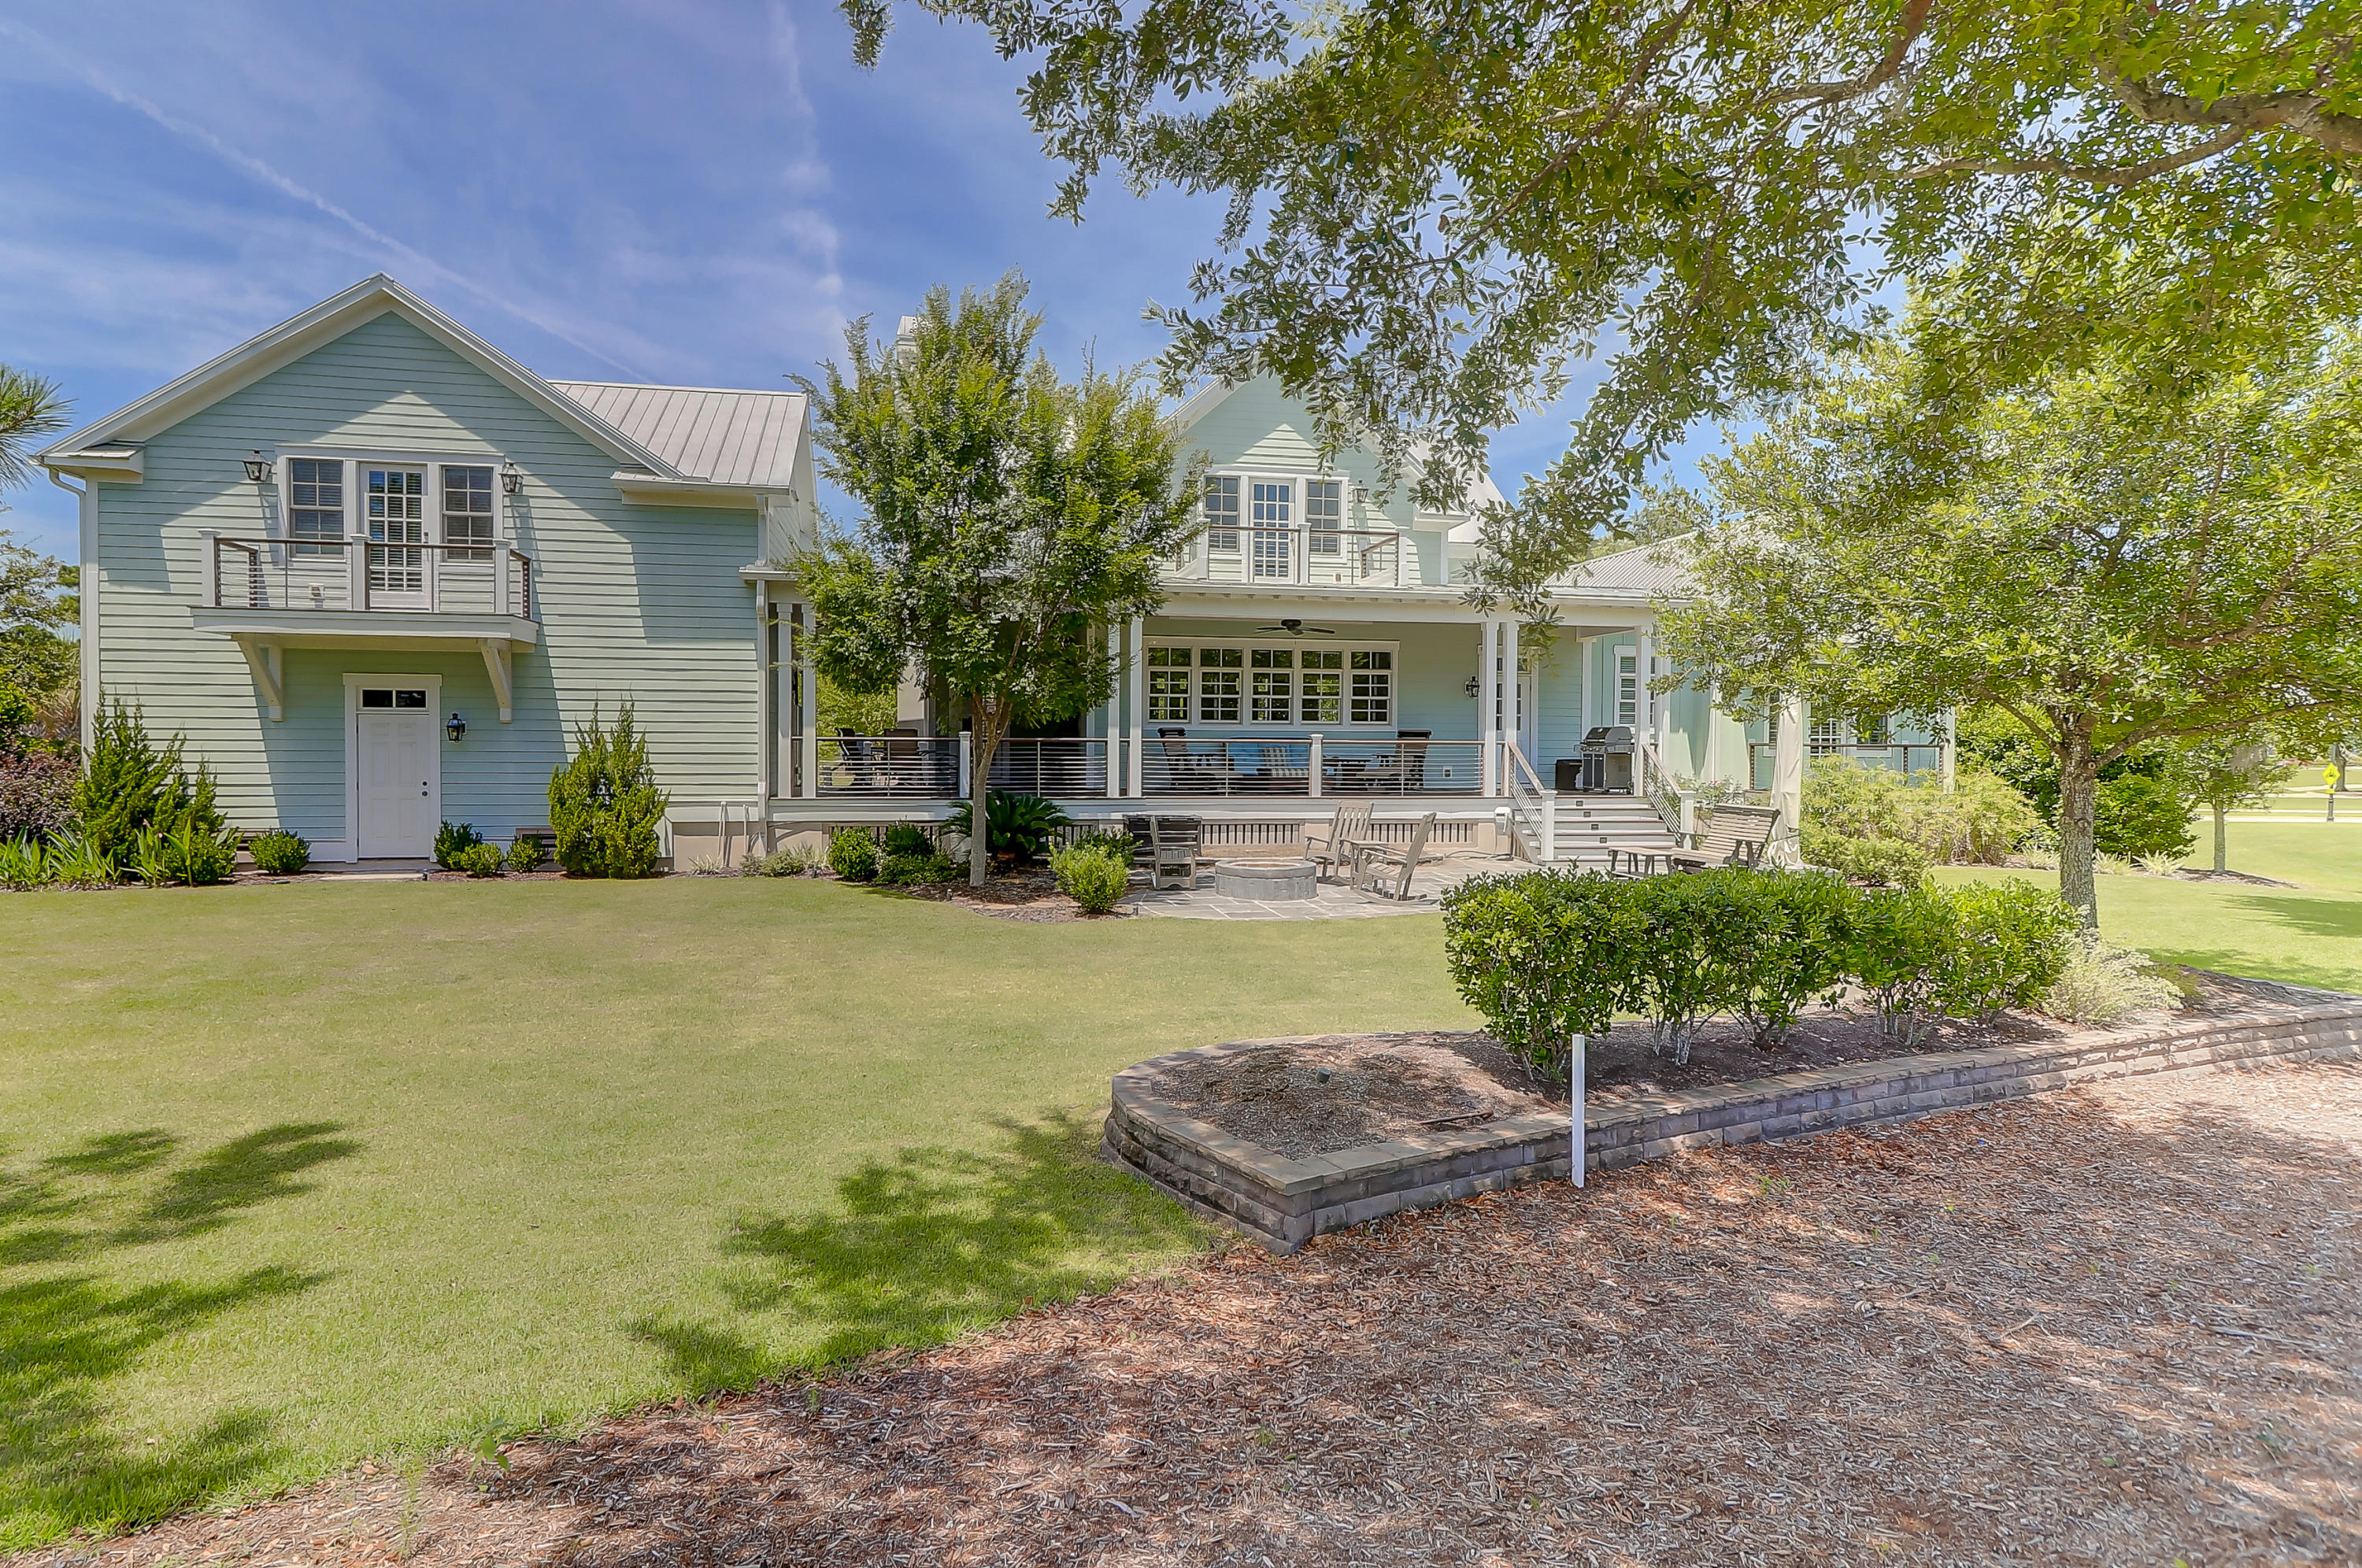 Photo of 151 Ithecaw Creek St, Charleston, SC 29492